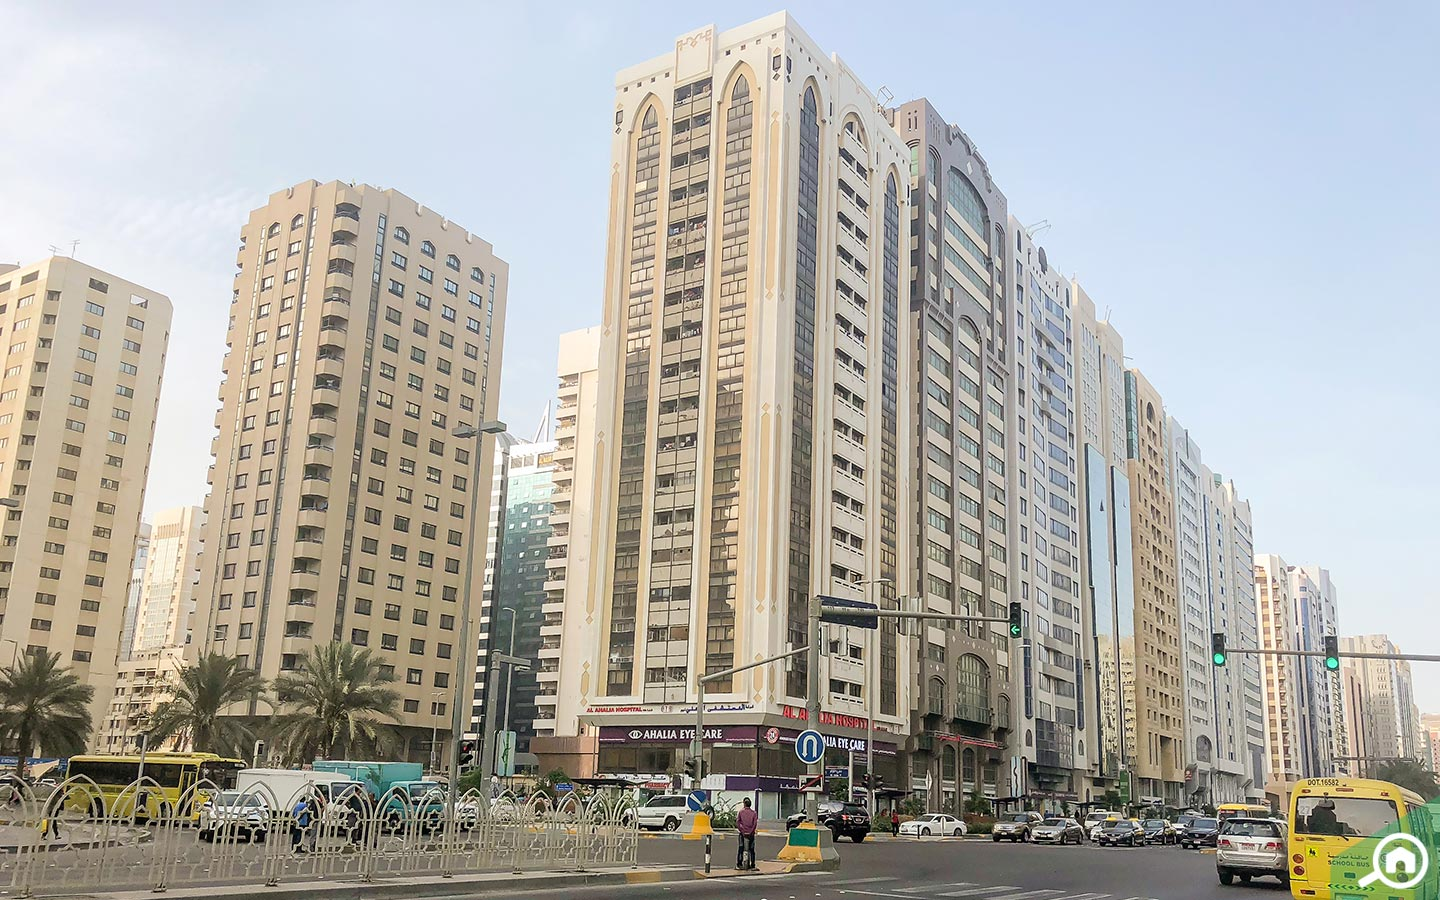 Apartments in Hamdan Street